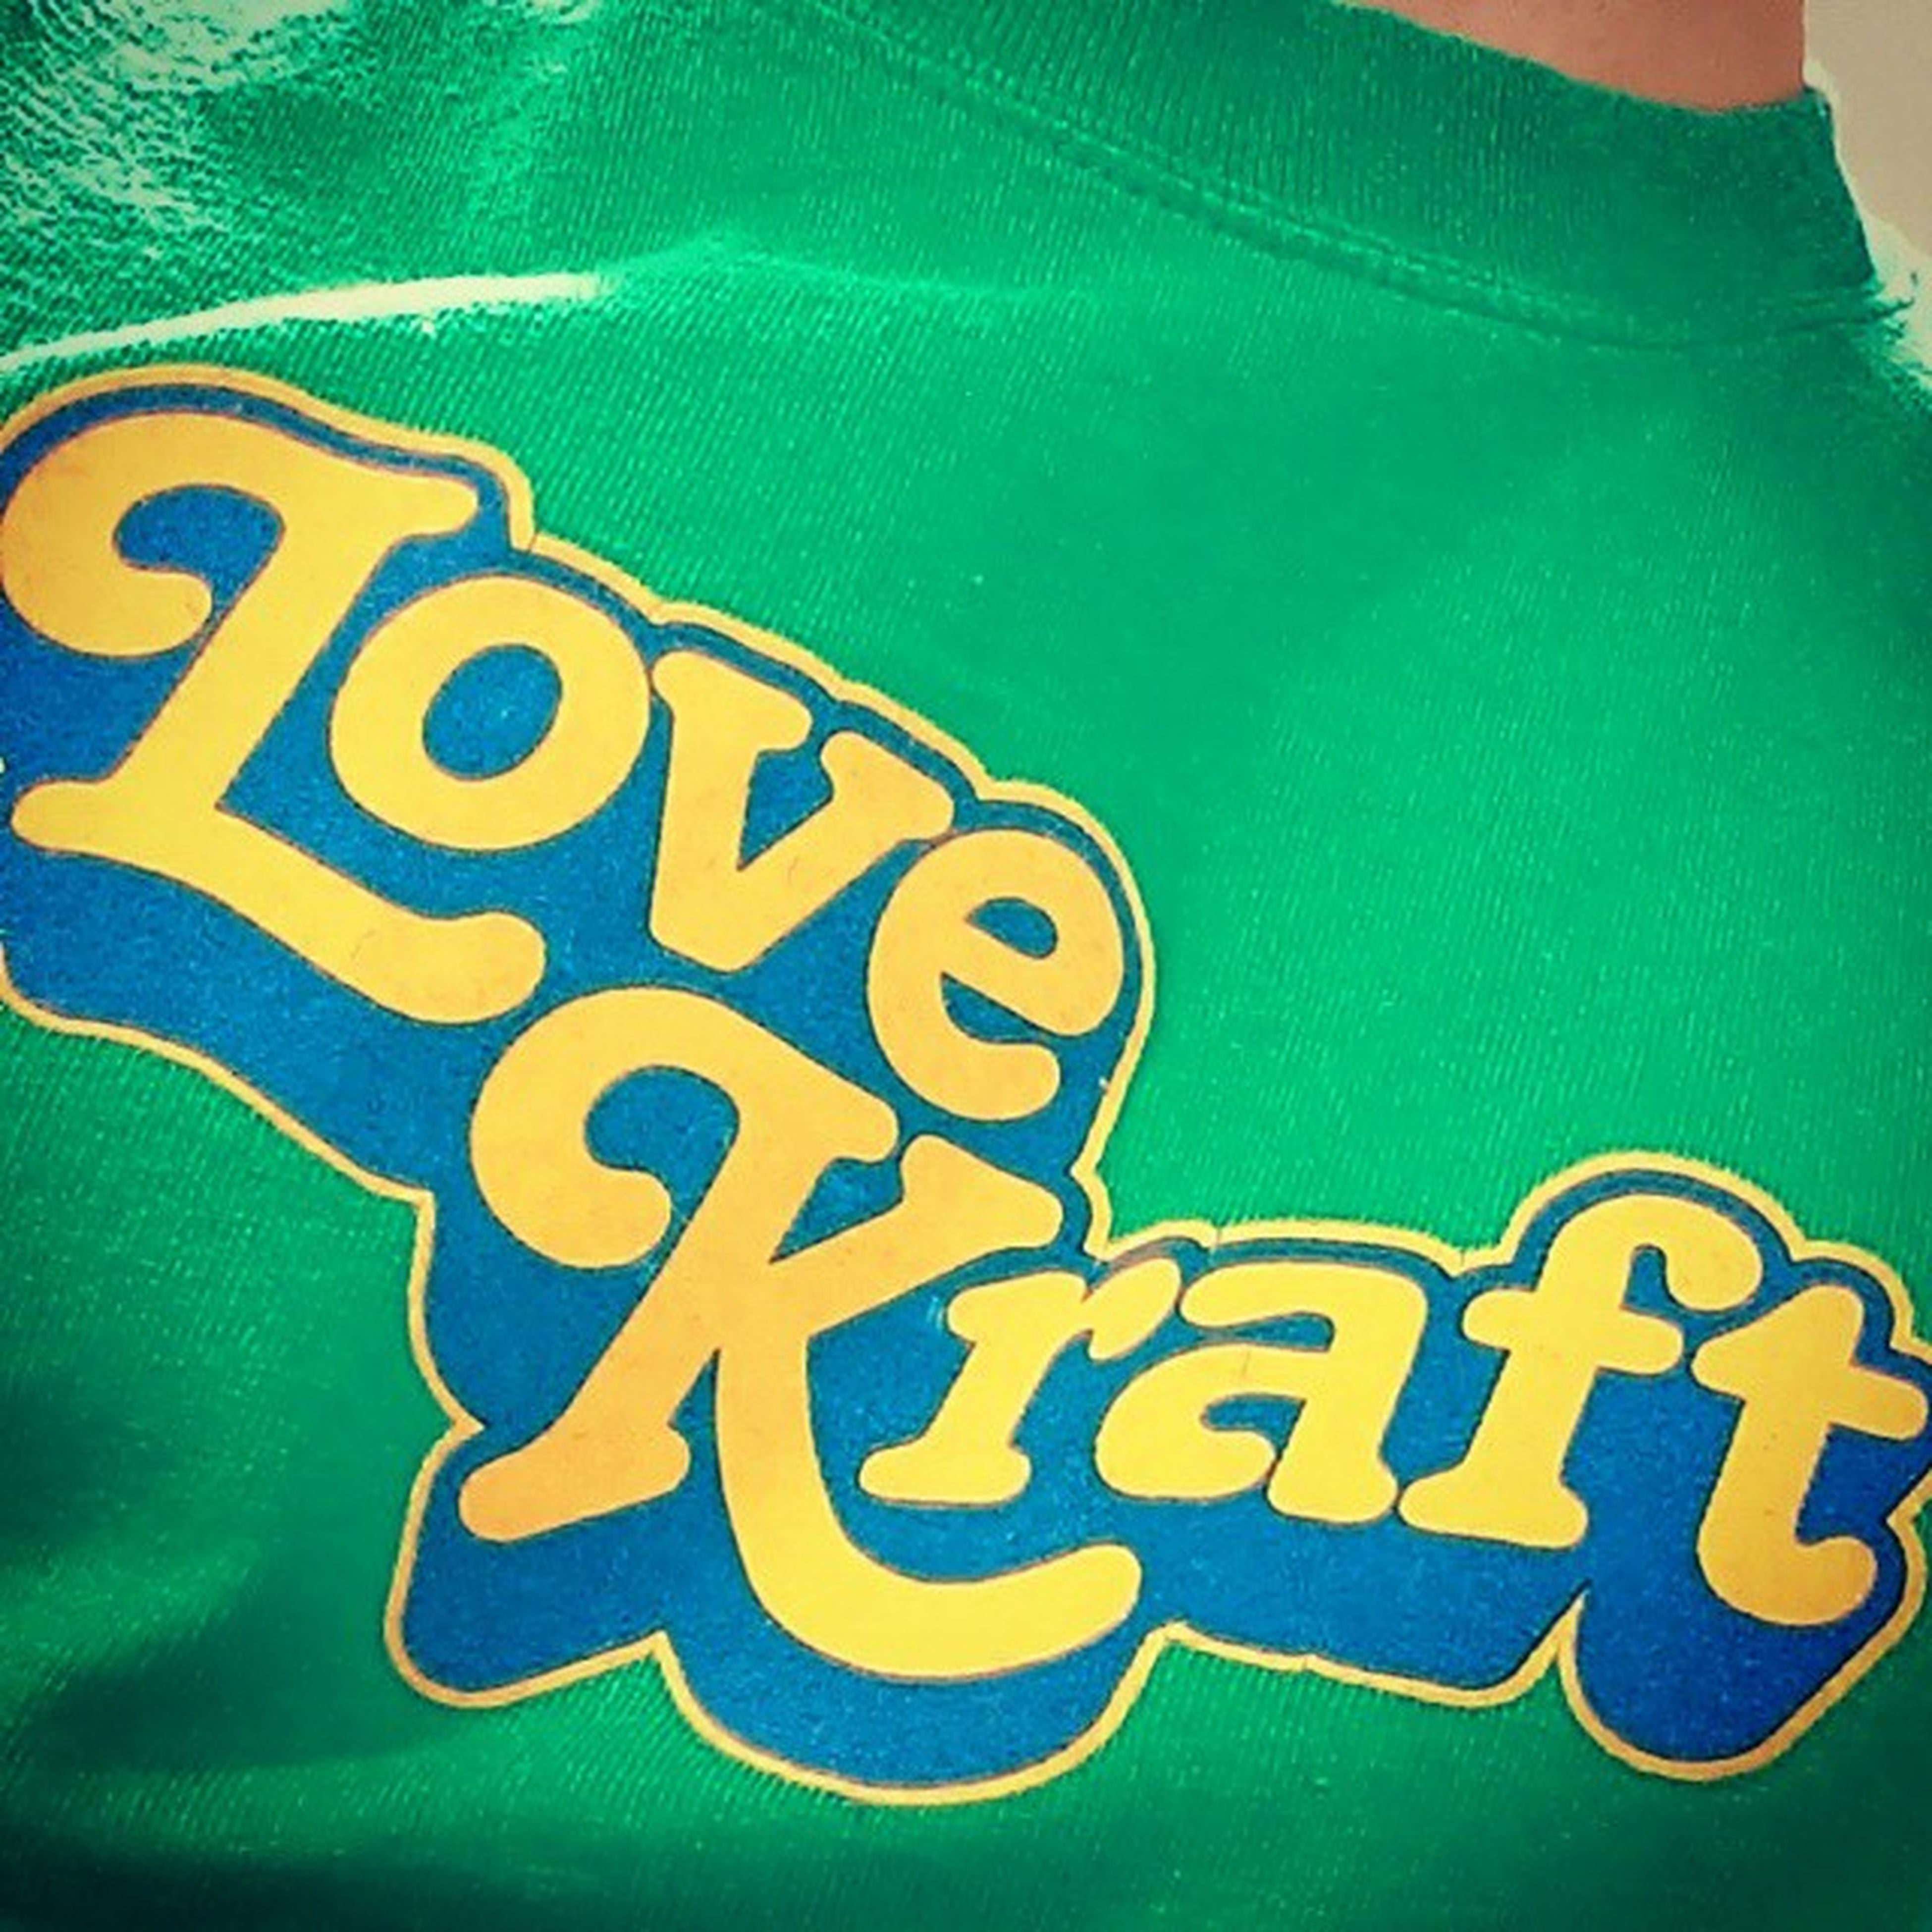 Wear your band T-shirt to work day - has to be a Super Furry one. 6musicTshirtDay LoveKraft SFA SFAOK SuperFurryAnimals SuperFurries music green yellow